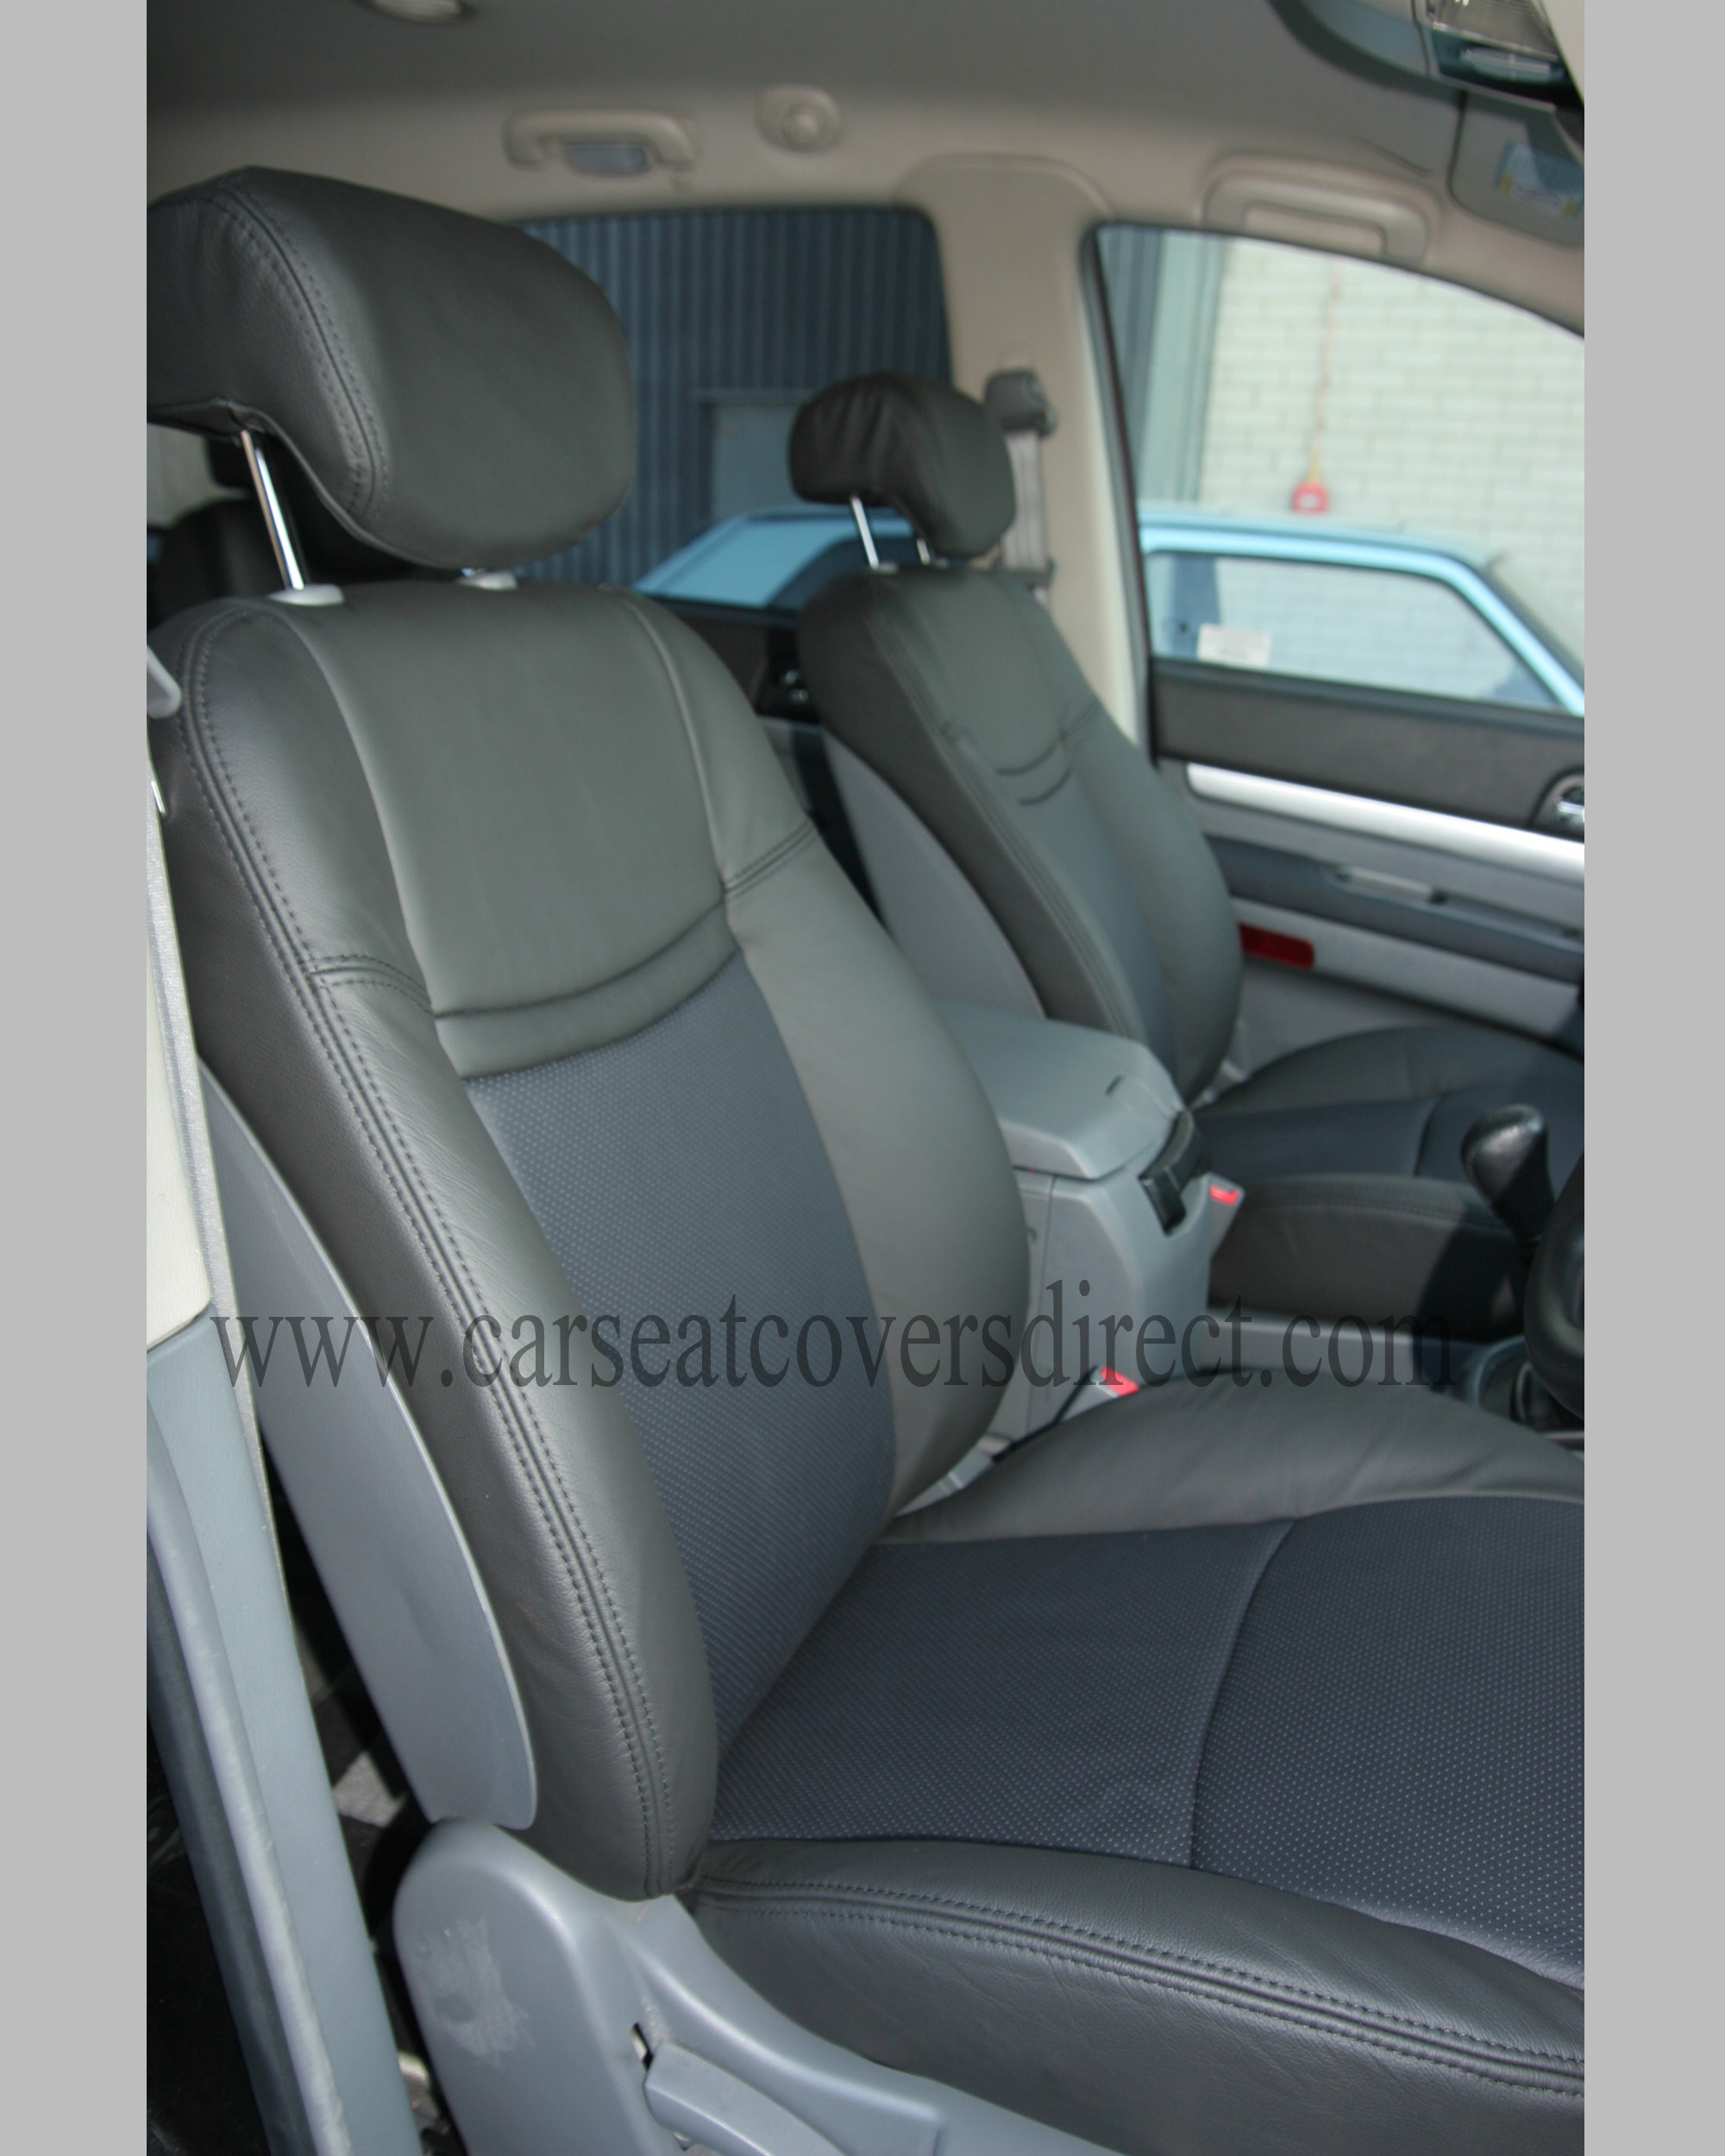 SSANG YONG RODIUS LEATHER RETRIM